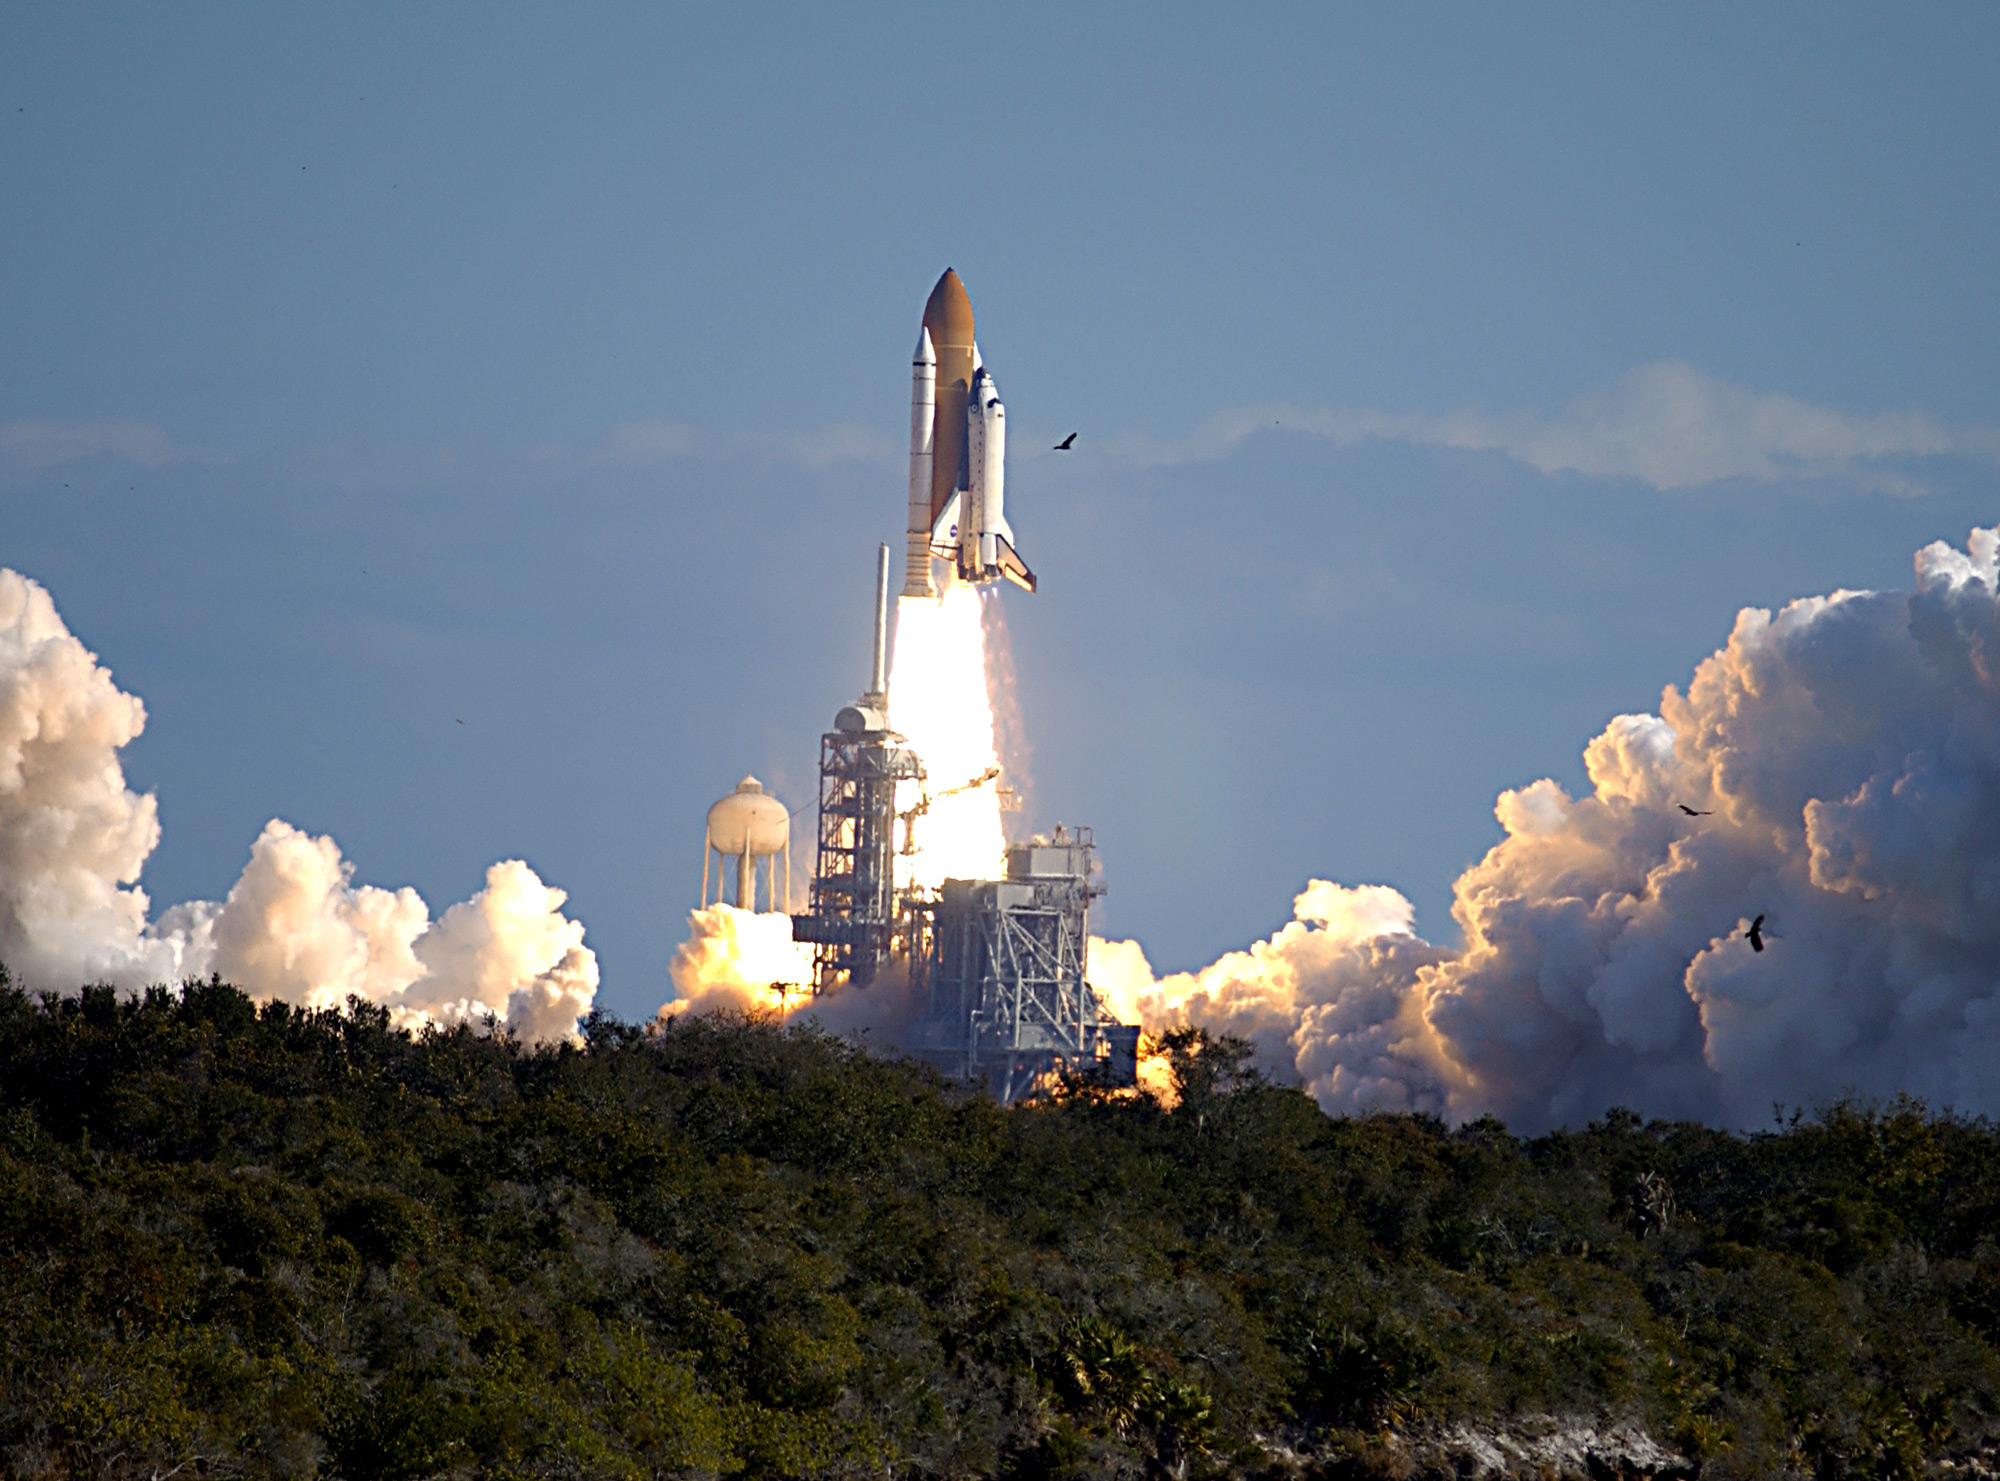 the challenger shuttle disaster engineering essay New topic short essay on disaster management  engineering production involves teamwork  space shuttle challenger disaster the space shuttle challenger disaster .